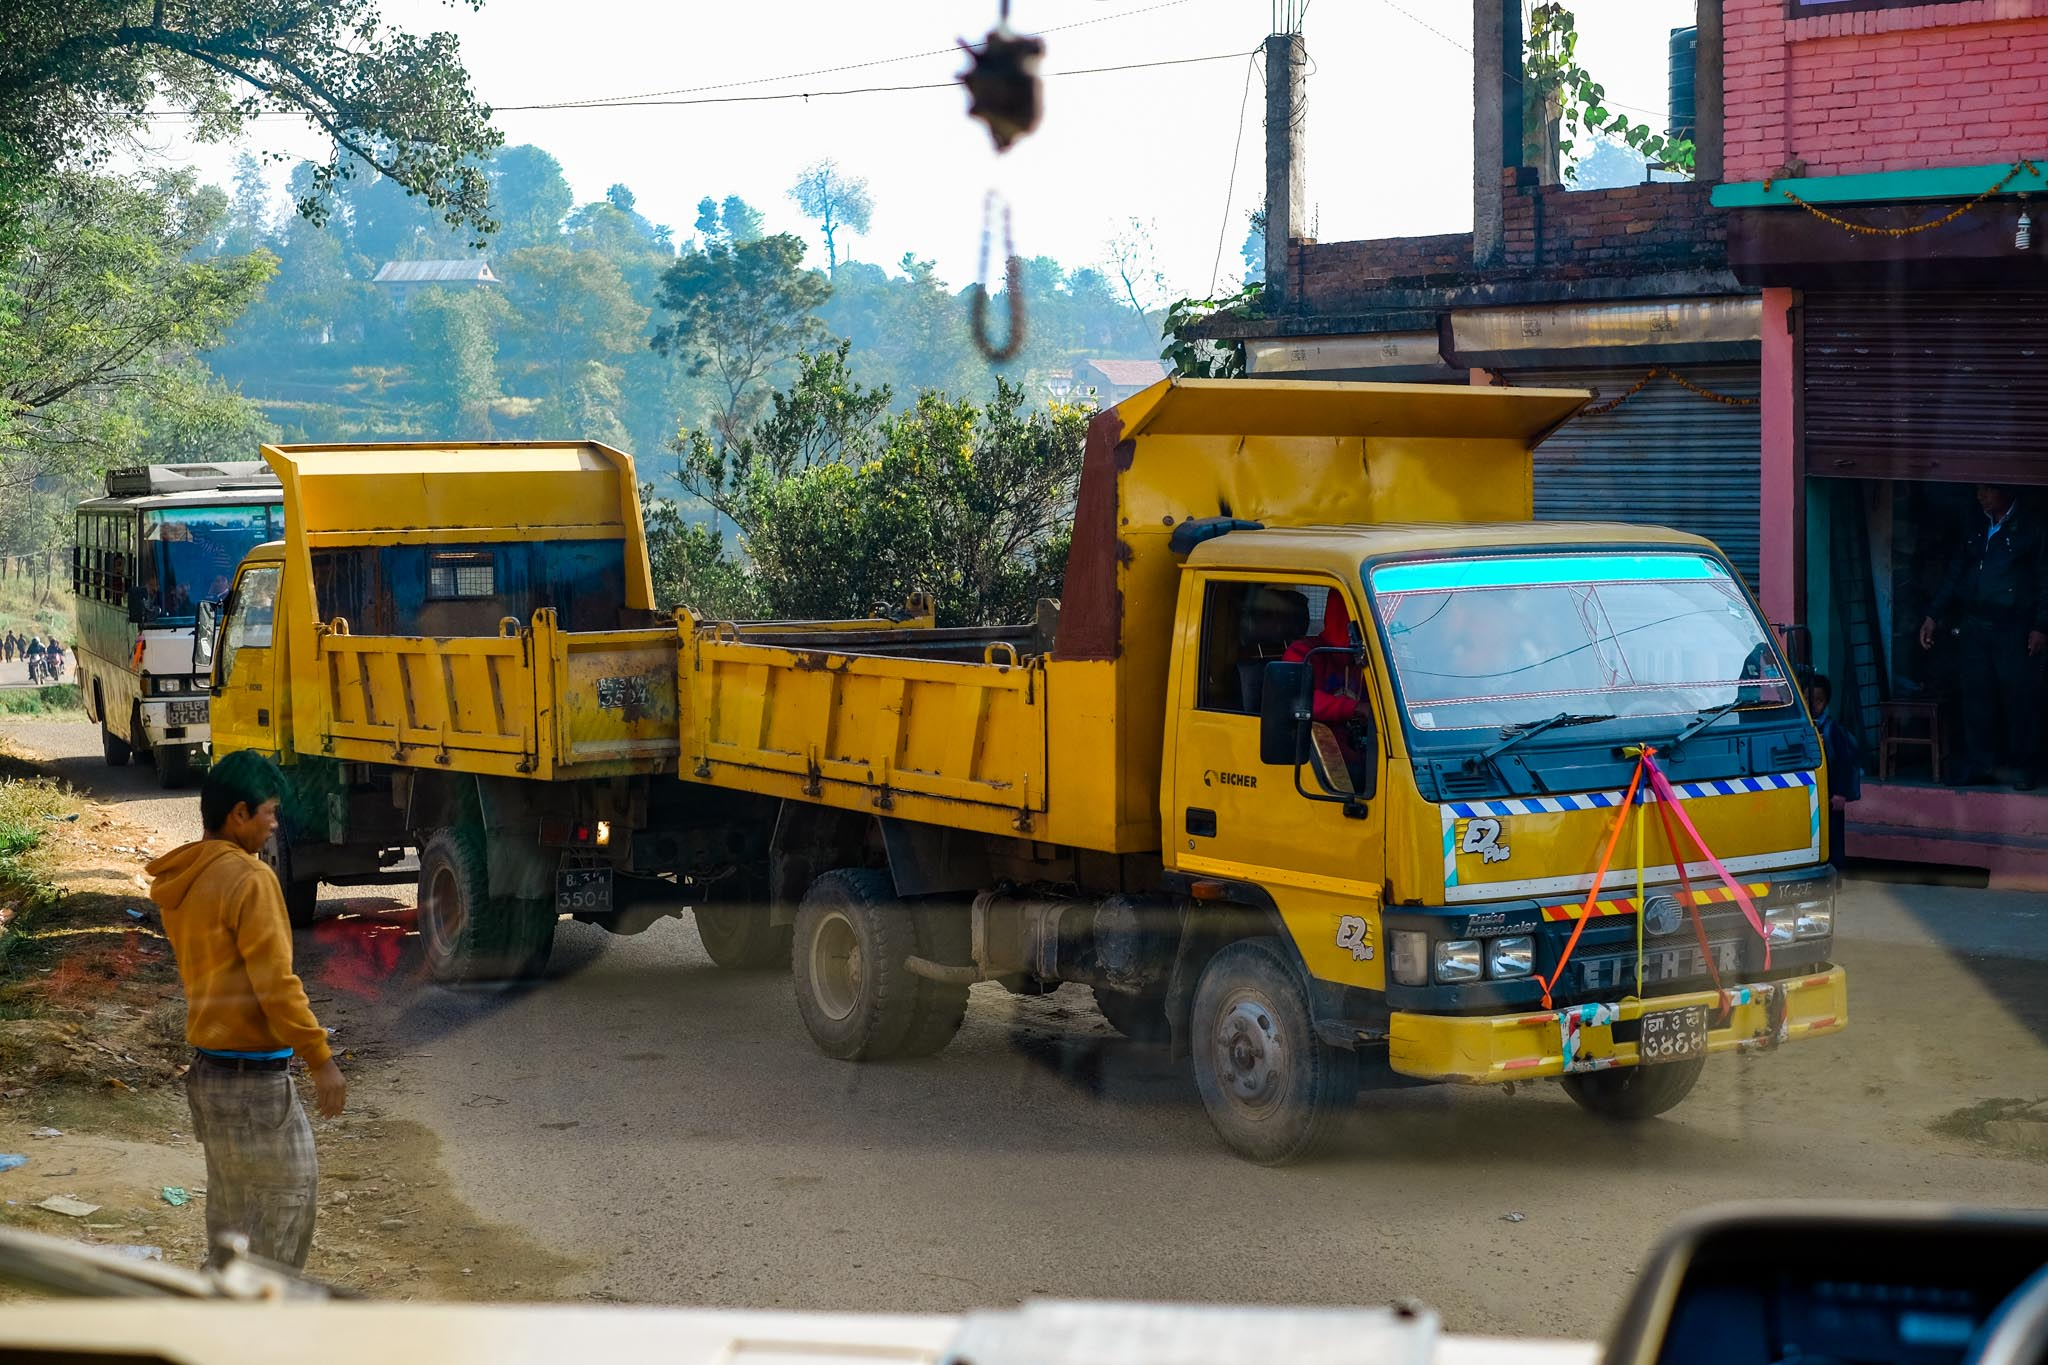 3/4 of the way to the school the road was blocked by these two tip trucks. One had to push the other down the hill to jump start it and eventually after 5 minutes the road was free again.